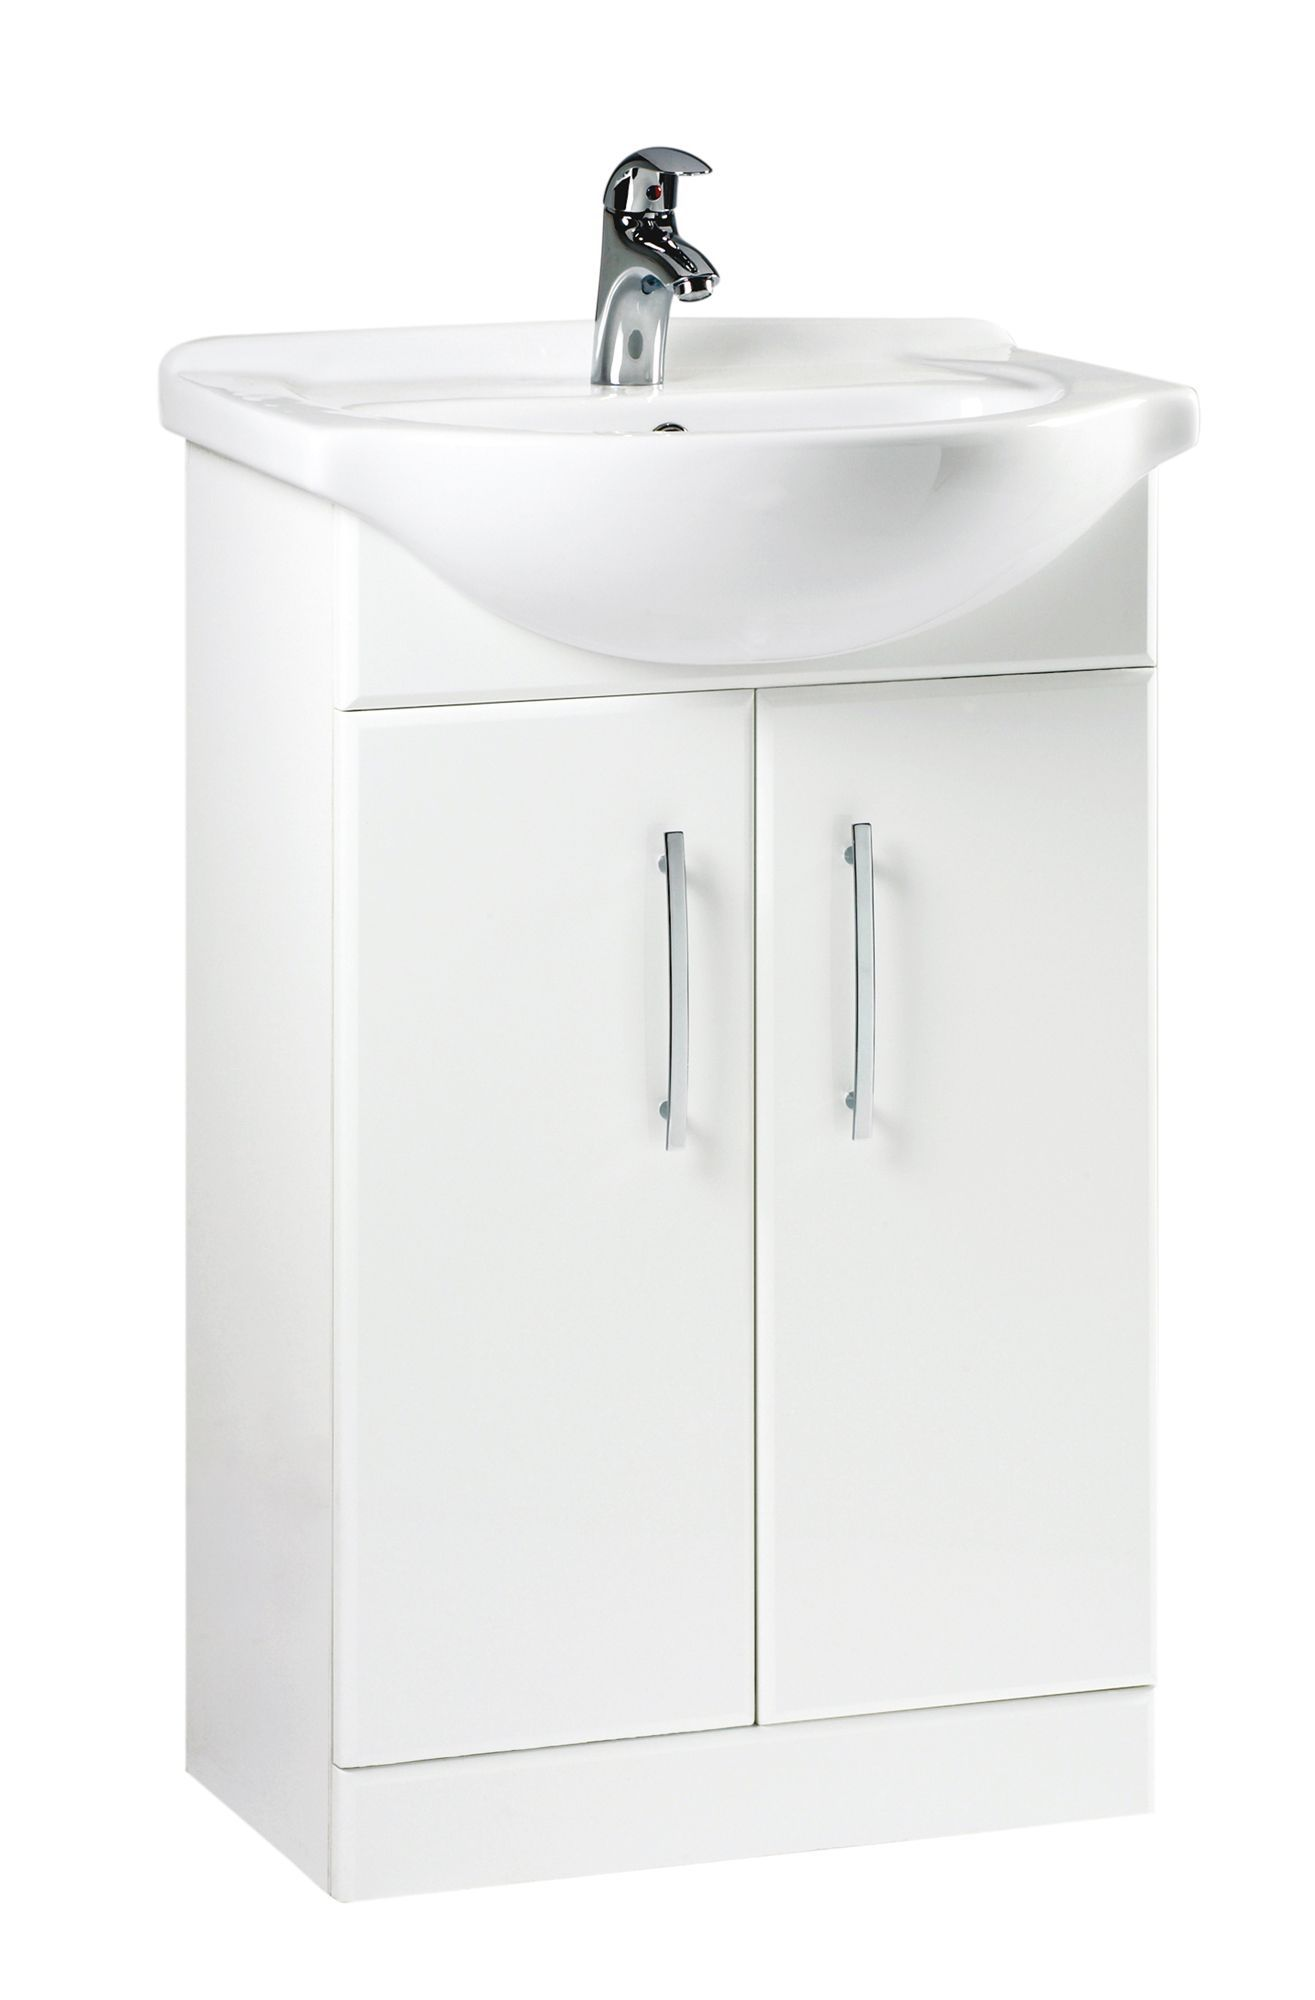 Bathroom Design B&Q b&q white vanity unit & basin | departments | diy at b&q